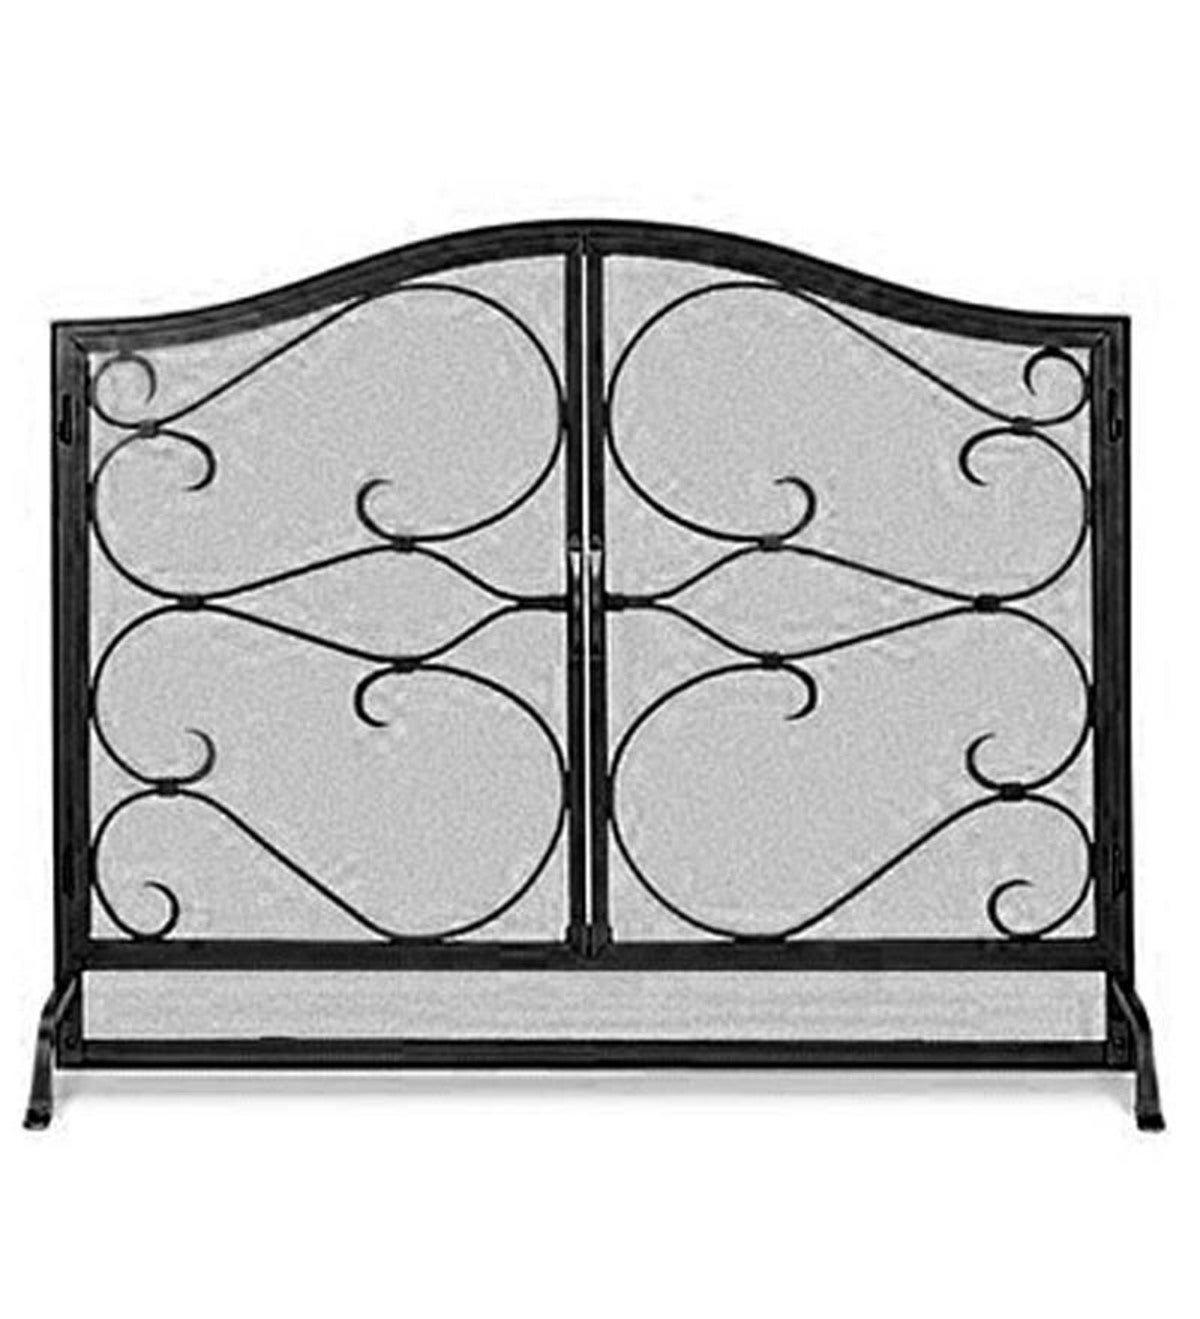 Large Iron Gate Hearth Screen with Doors - Black